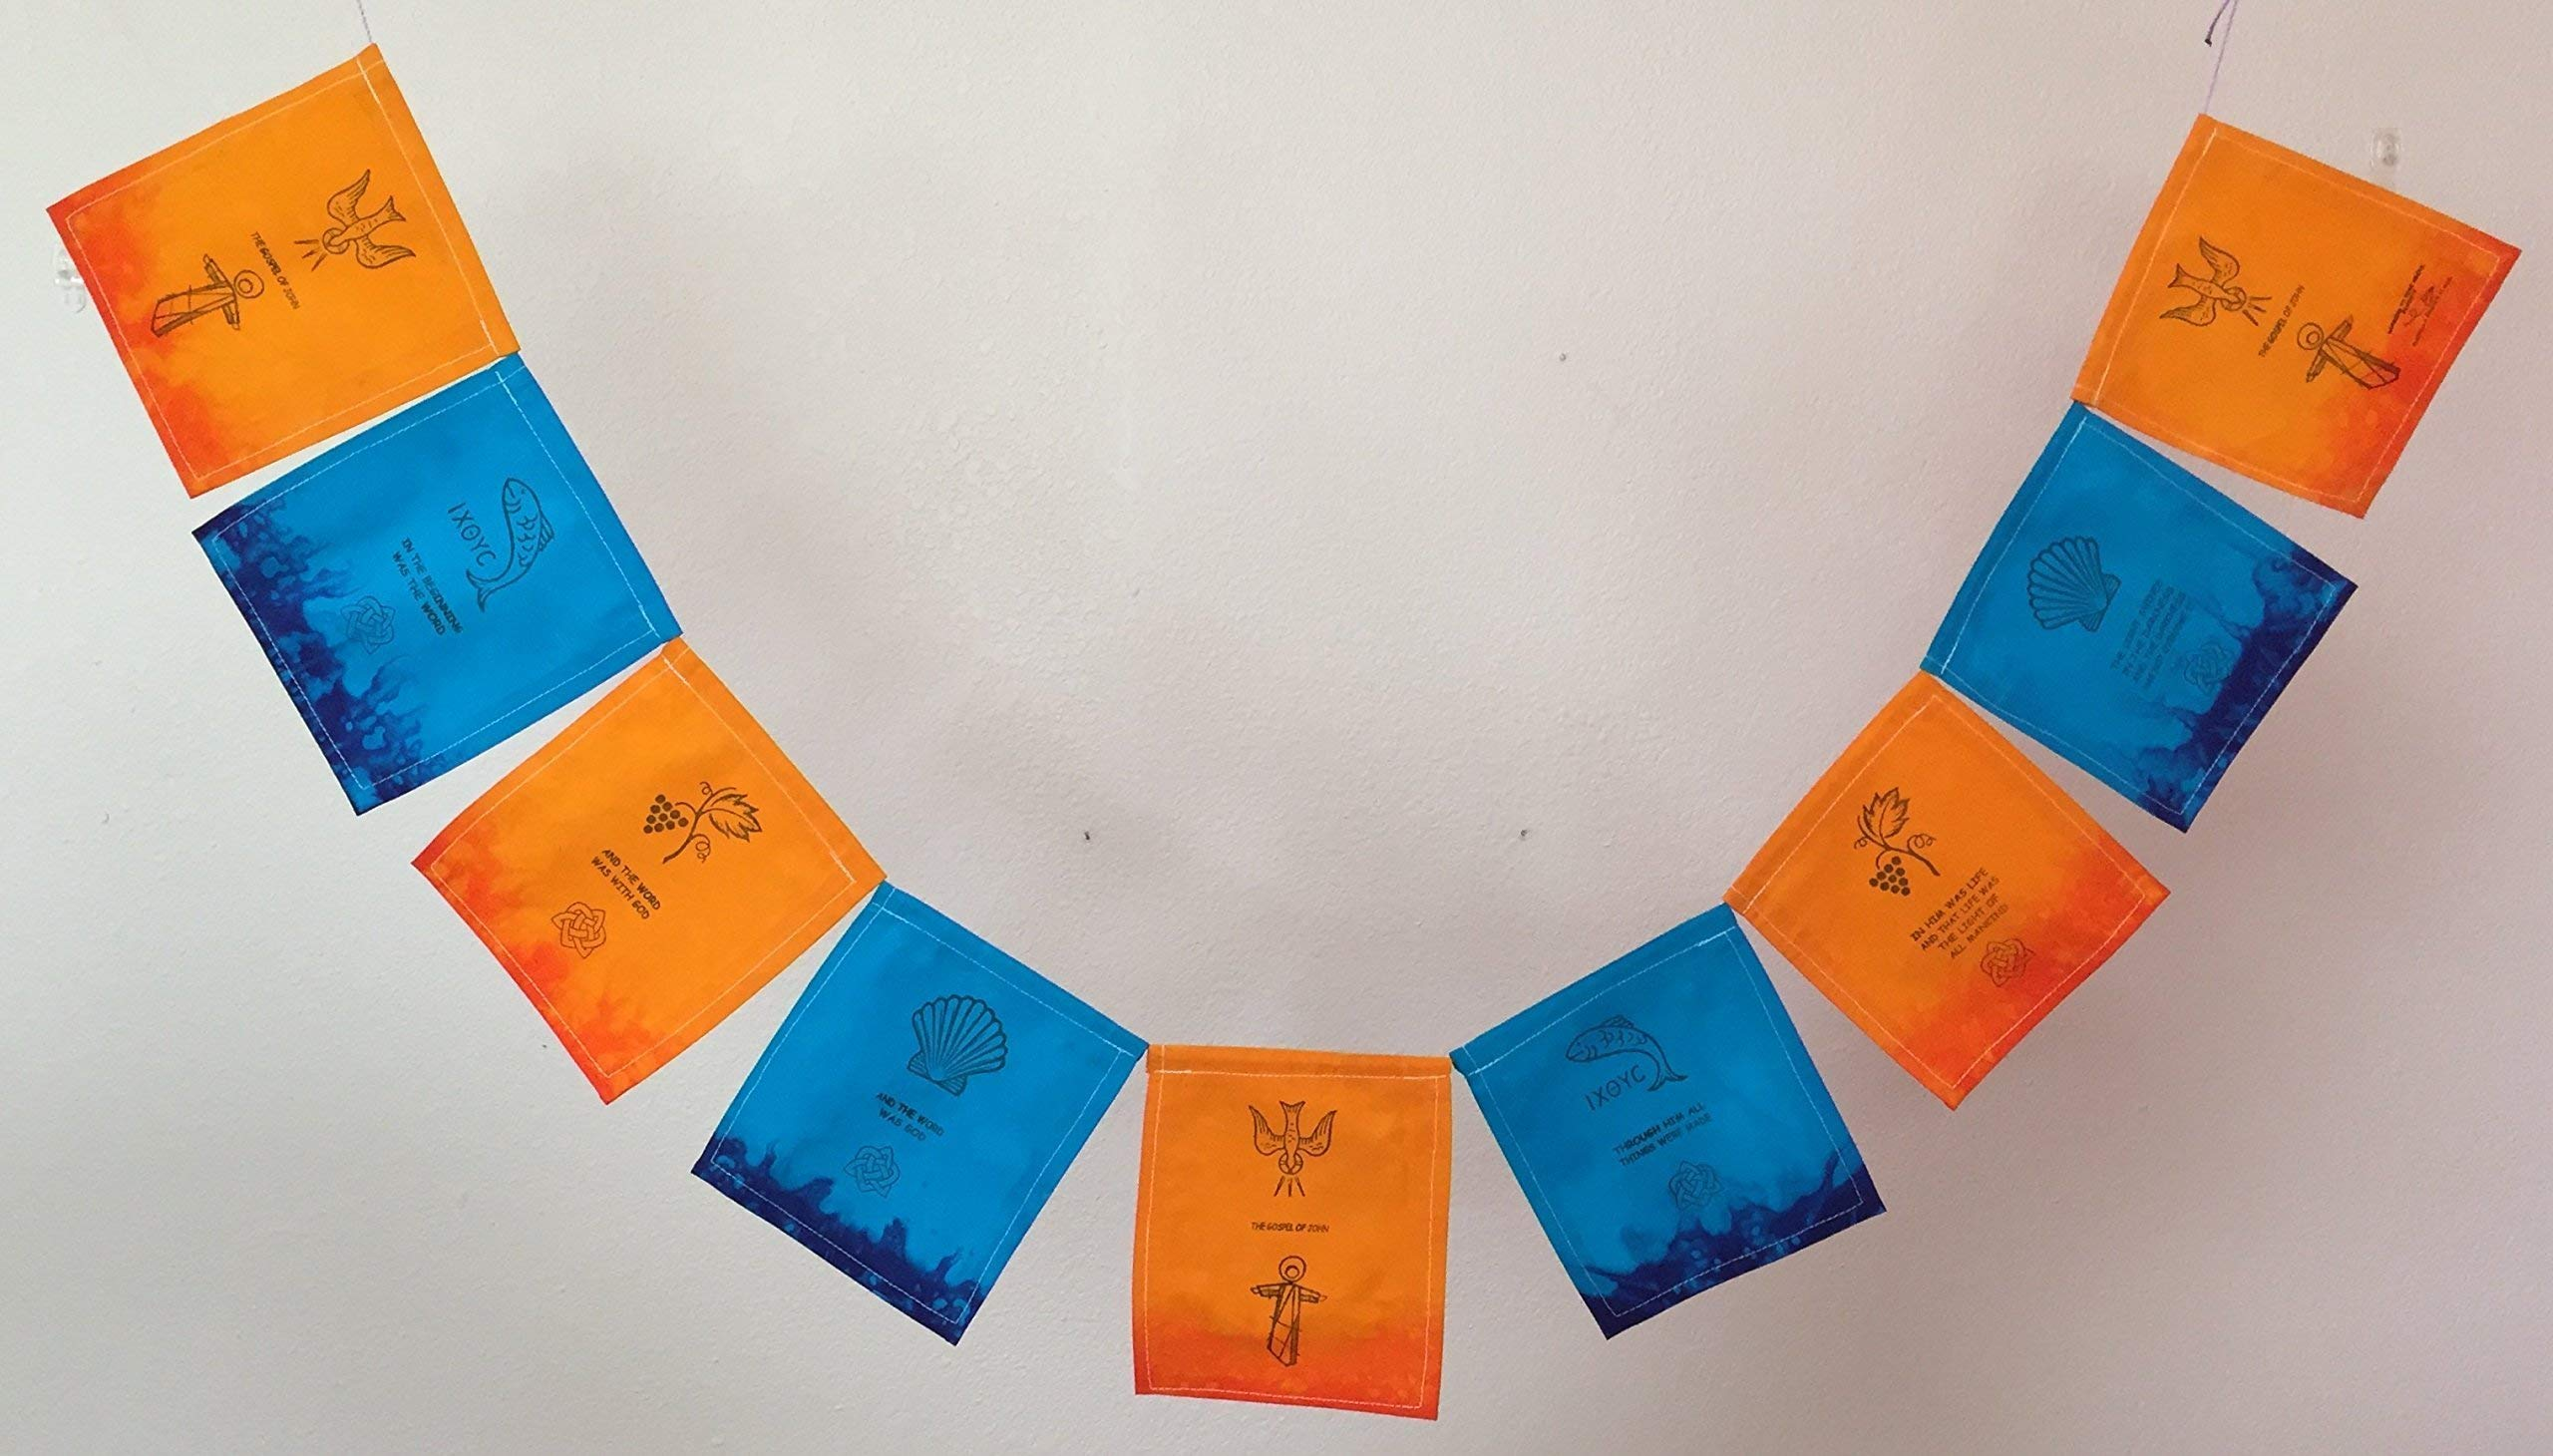 The Gospel of John Christian Prayer Flag''The Word became flesh.'' All proceeds to families in Mexico.